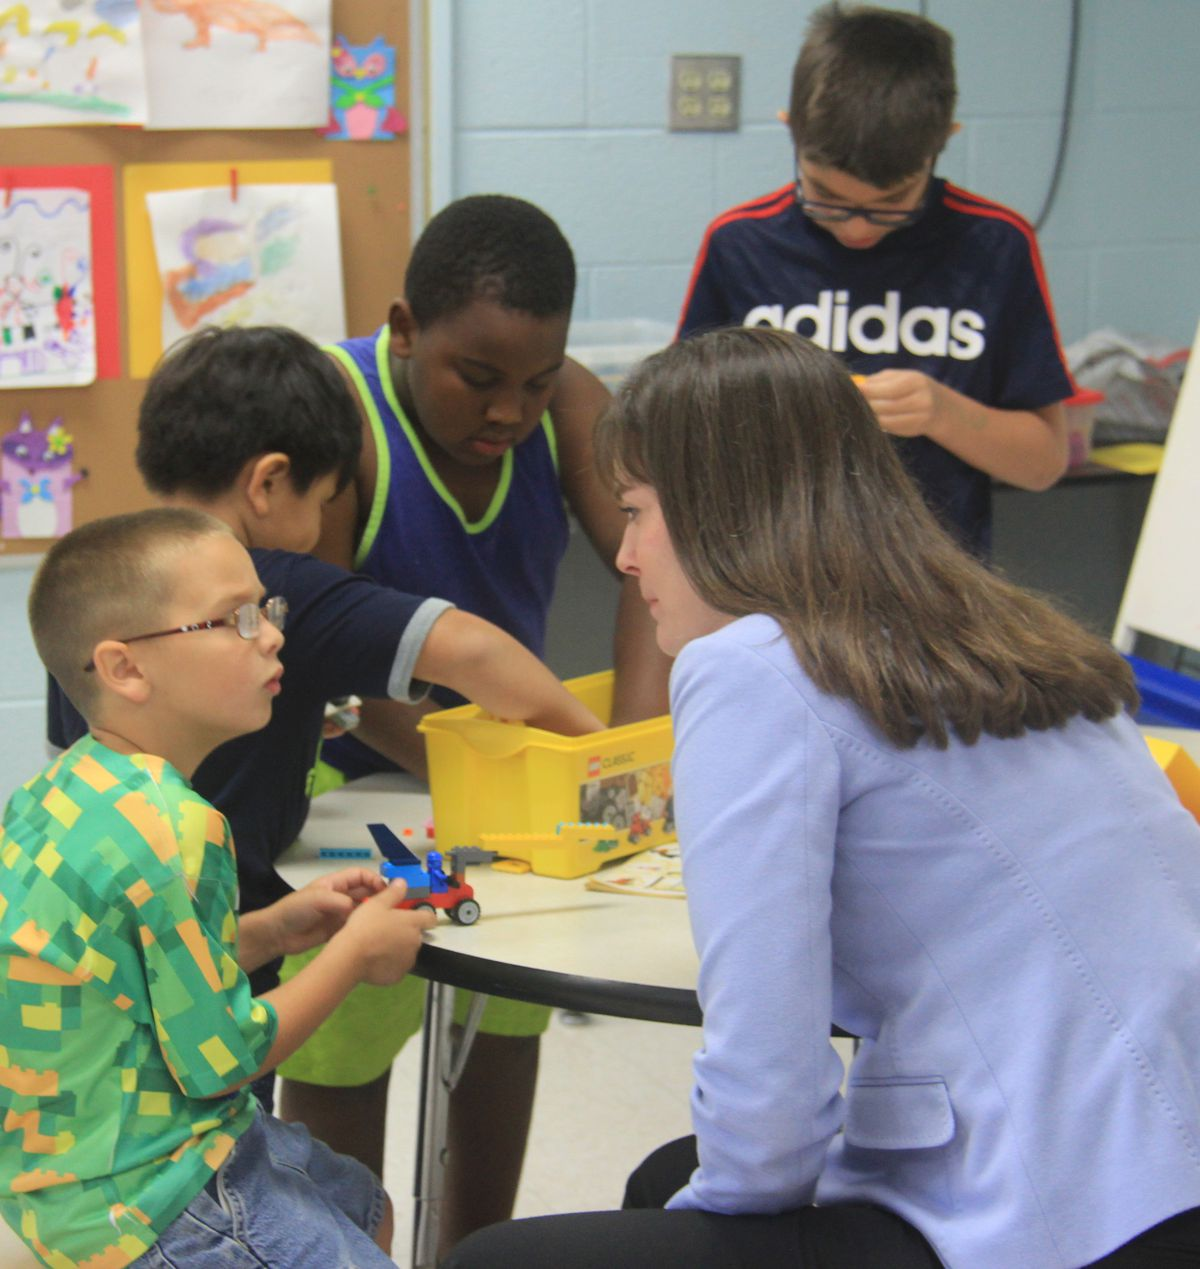 Education Commissioner Candice McQueen visits students at Camp Explore.